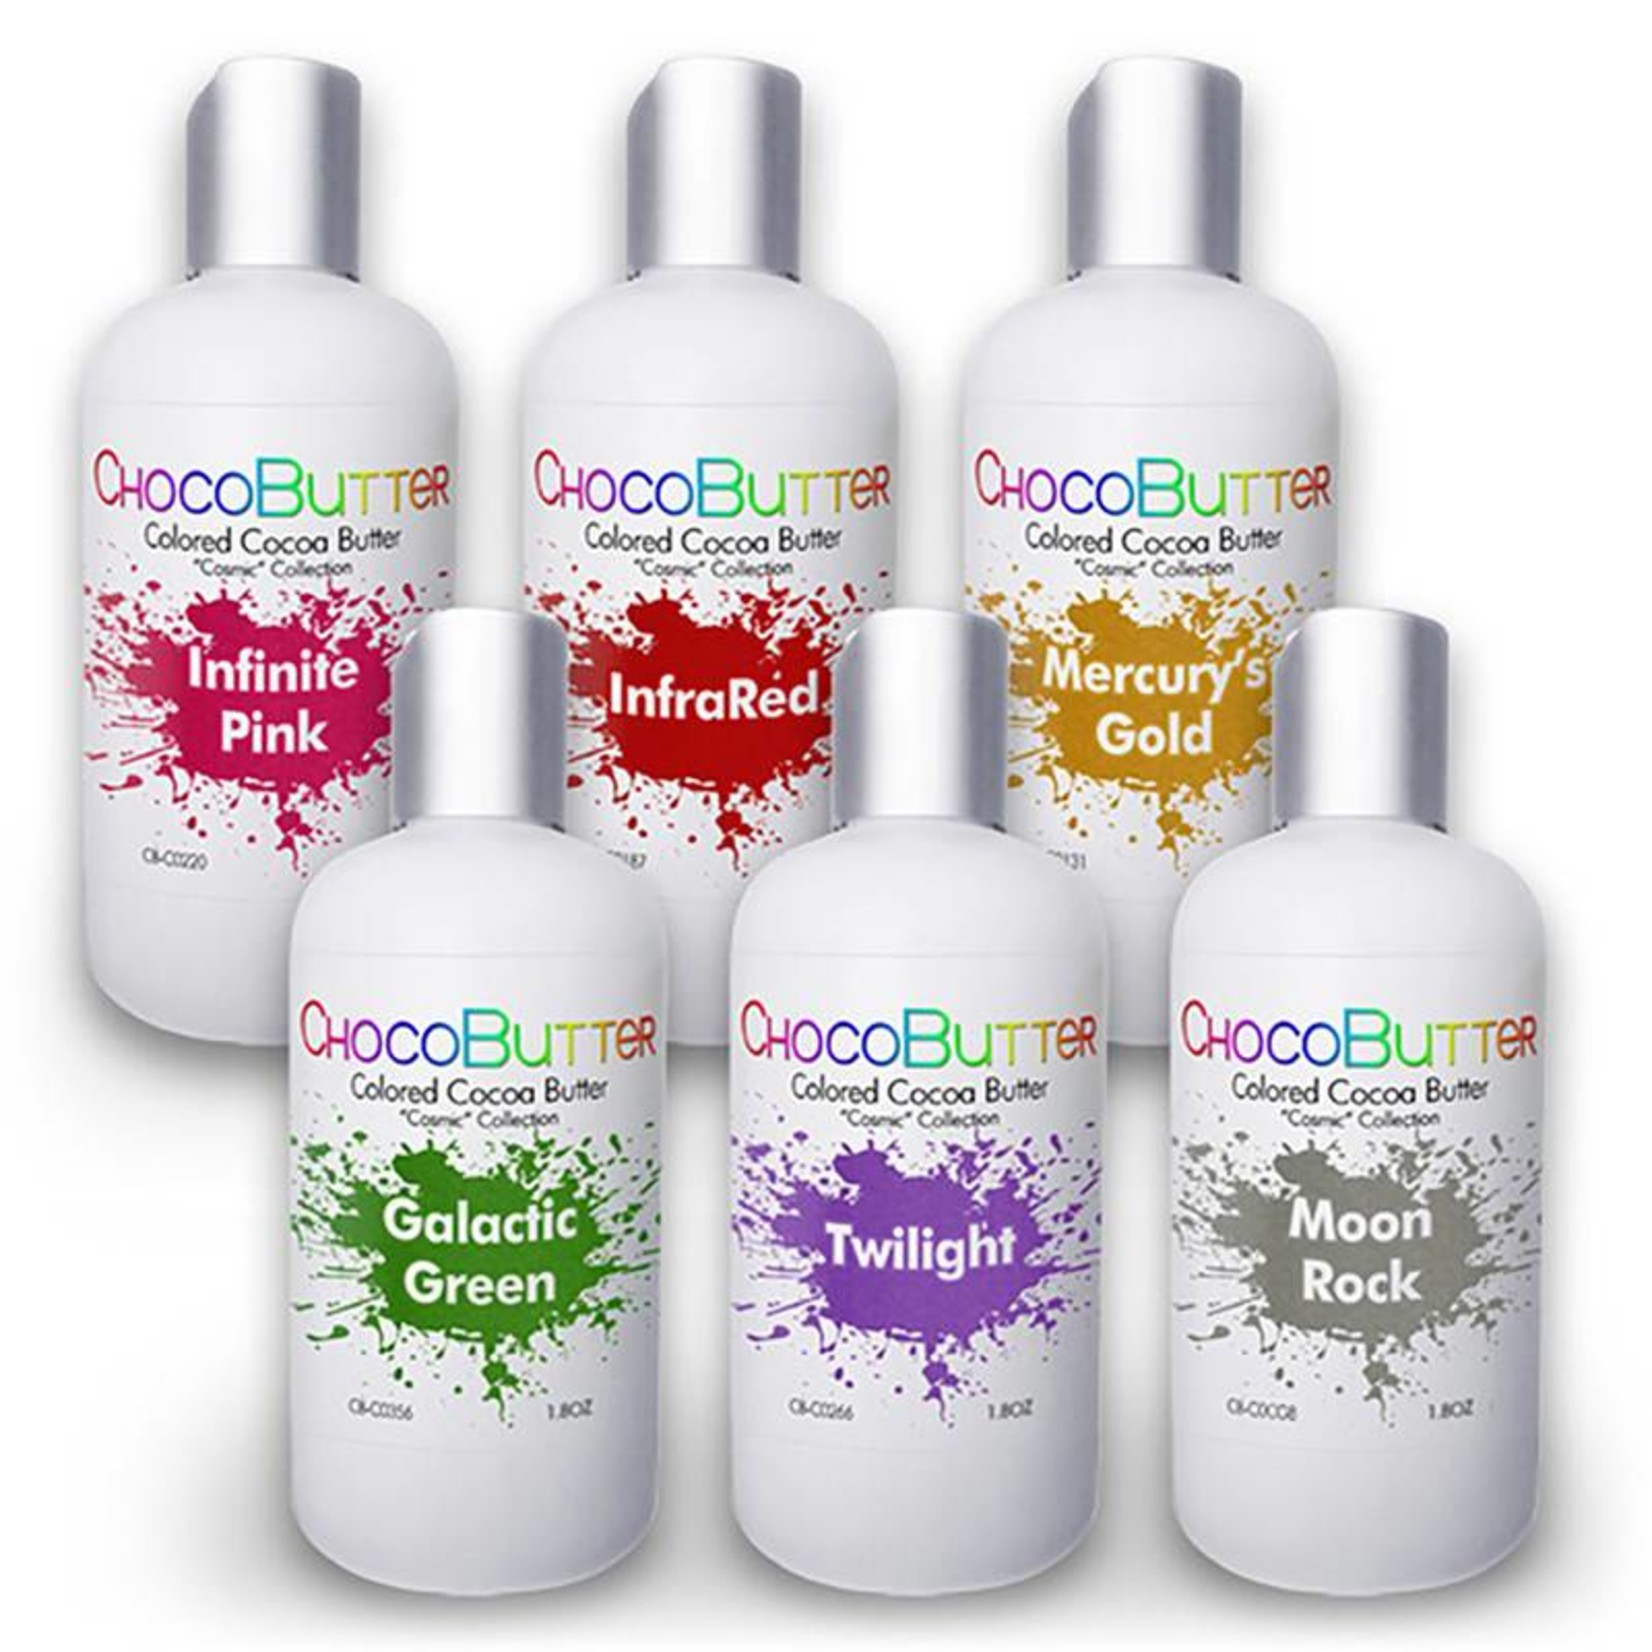 Chocobutter Chocobutter - Cosmic Starter Cocoa butter kit- 6 colors - 1.8oz